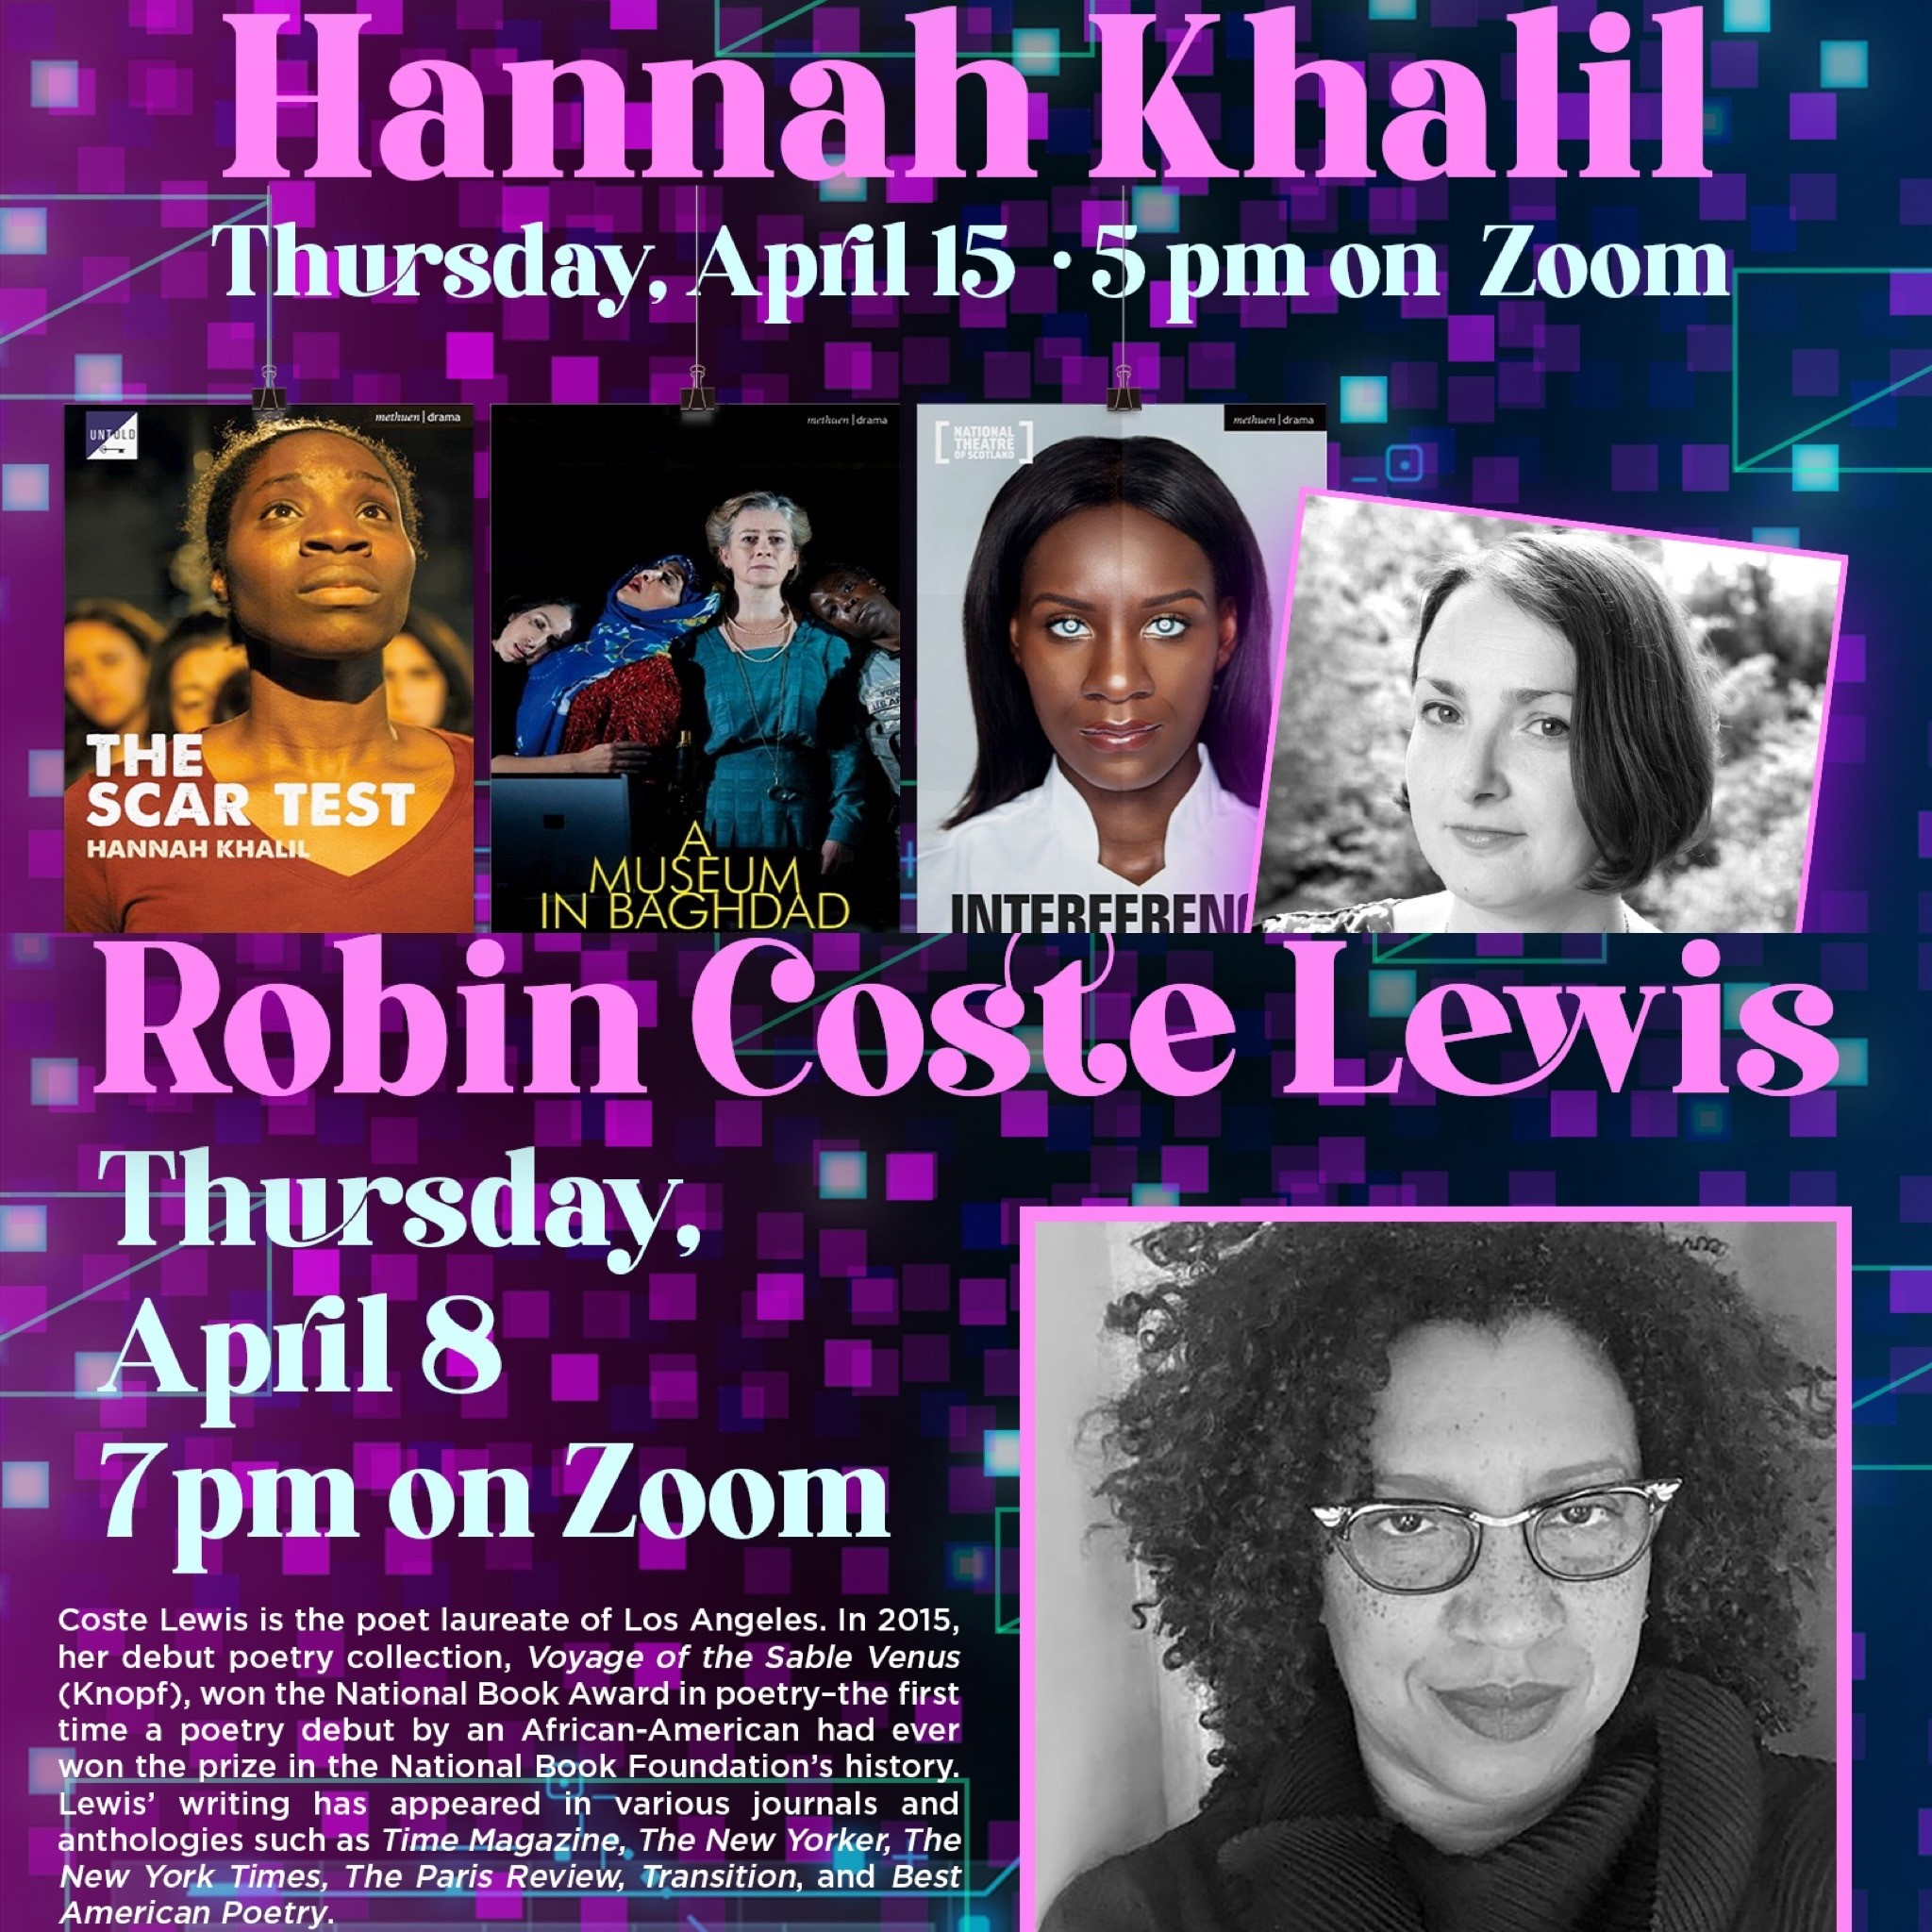 Literary Festival poster with Hannah Khalil and Robin Coste Lewis